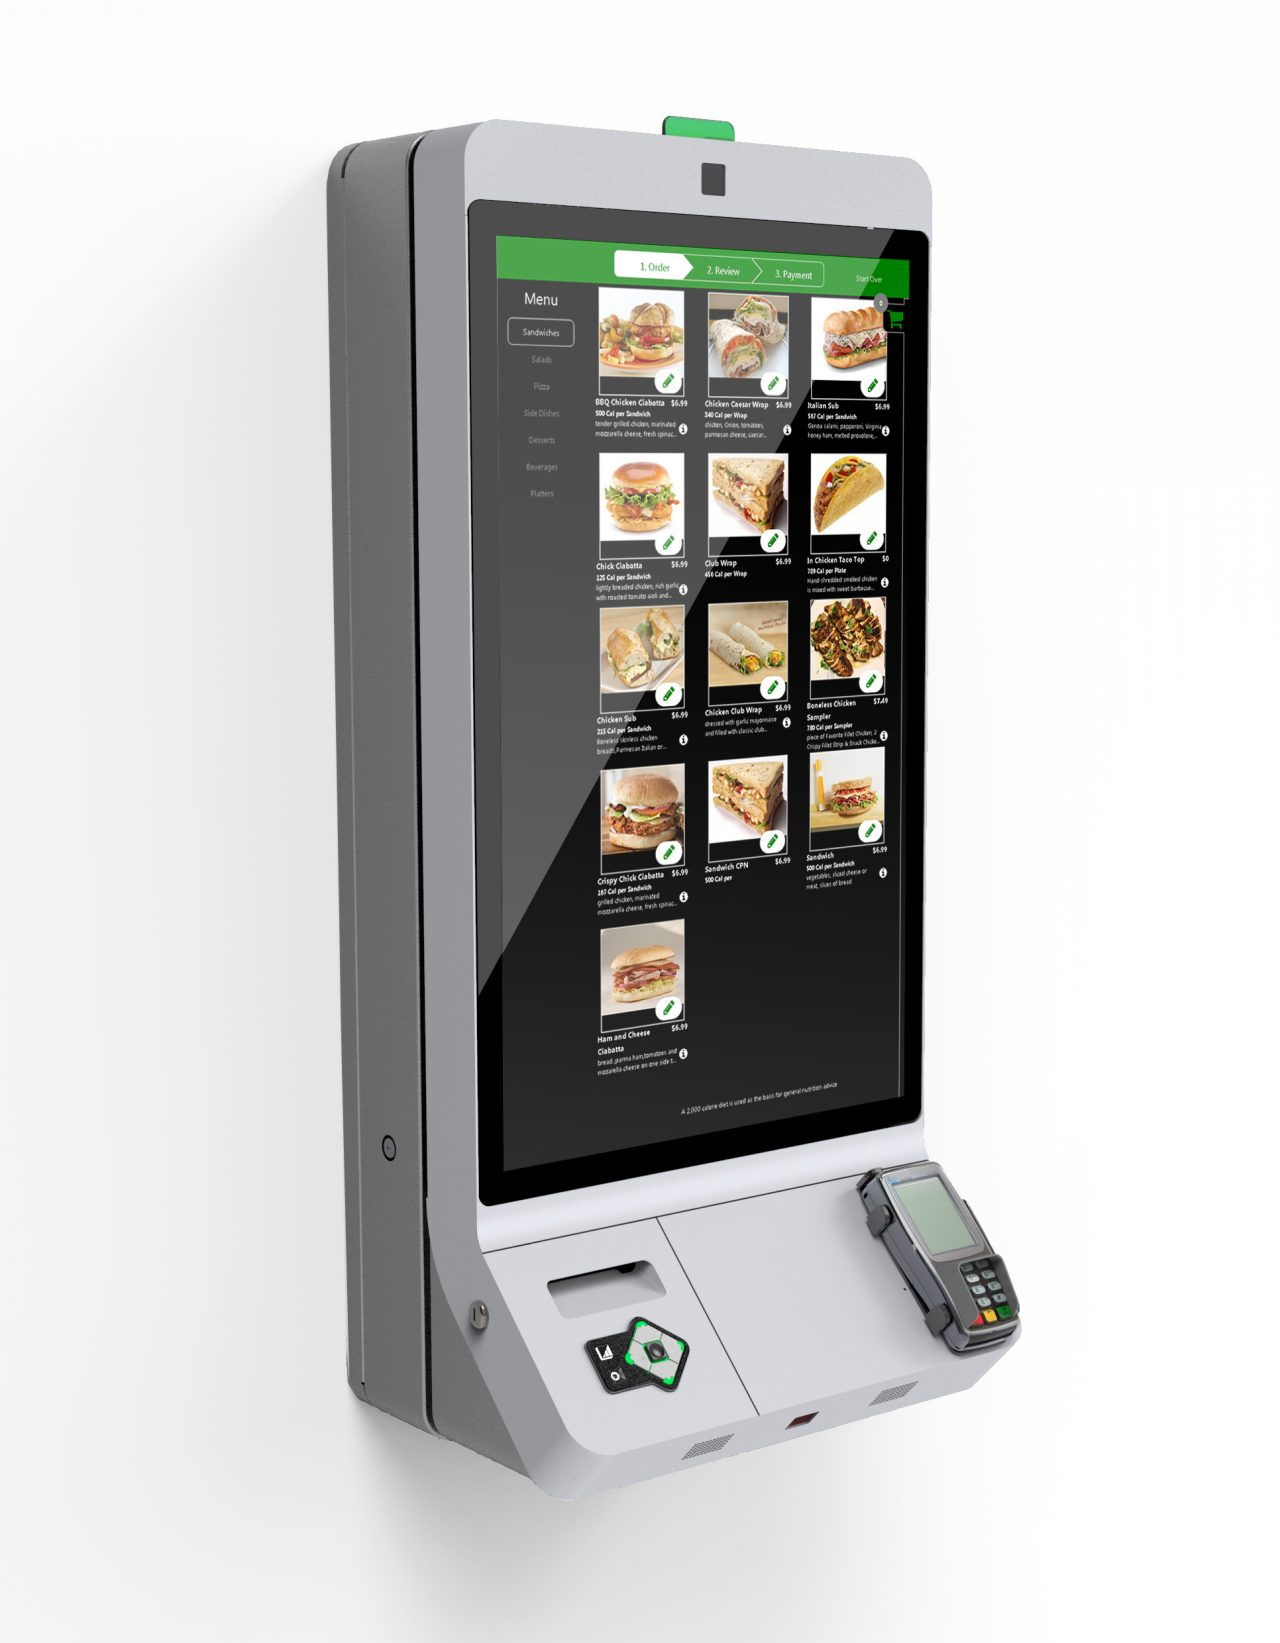 Product photo of hardware and display of self ordering kiosk